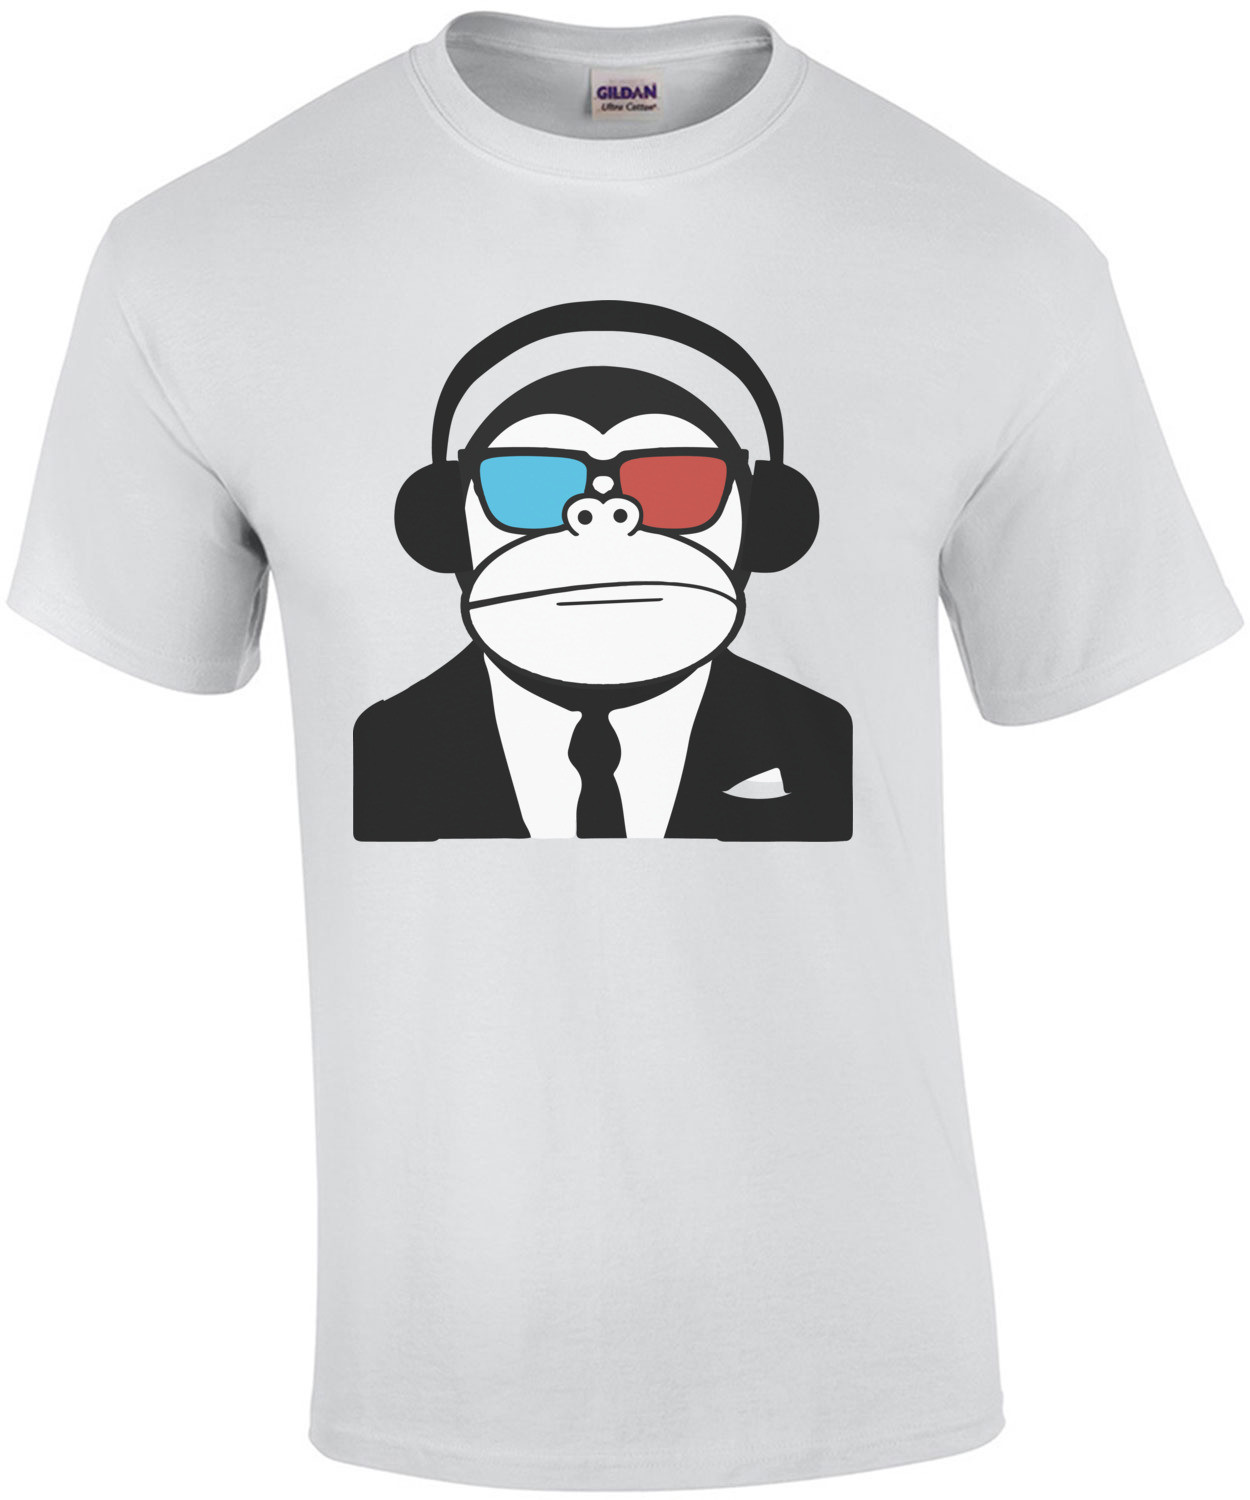 3D Ape Monkey Club Electro T-Shirt